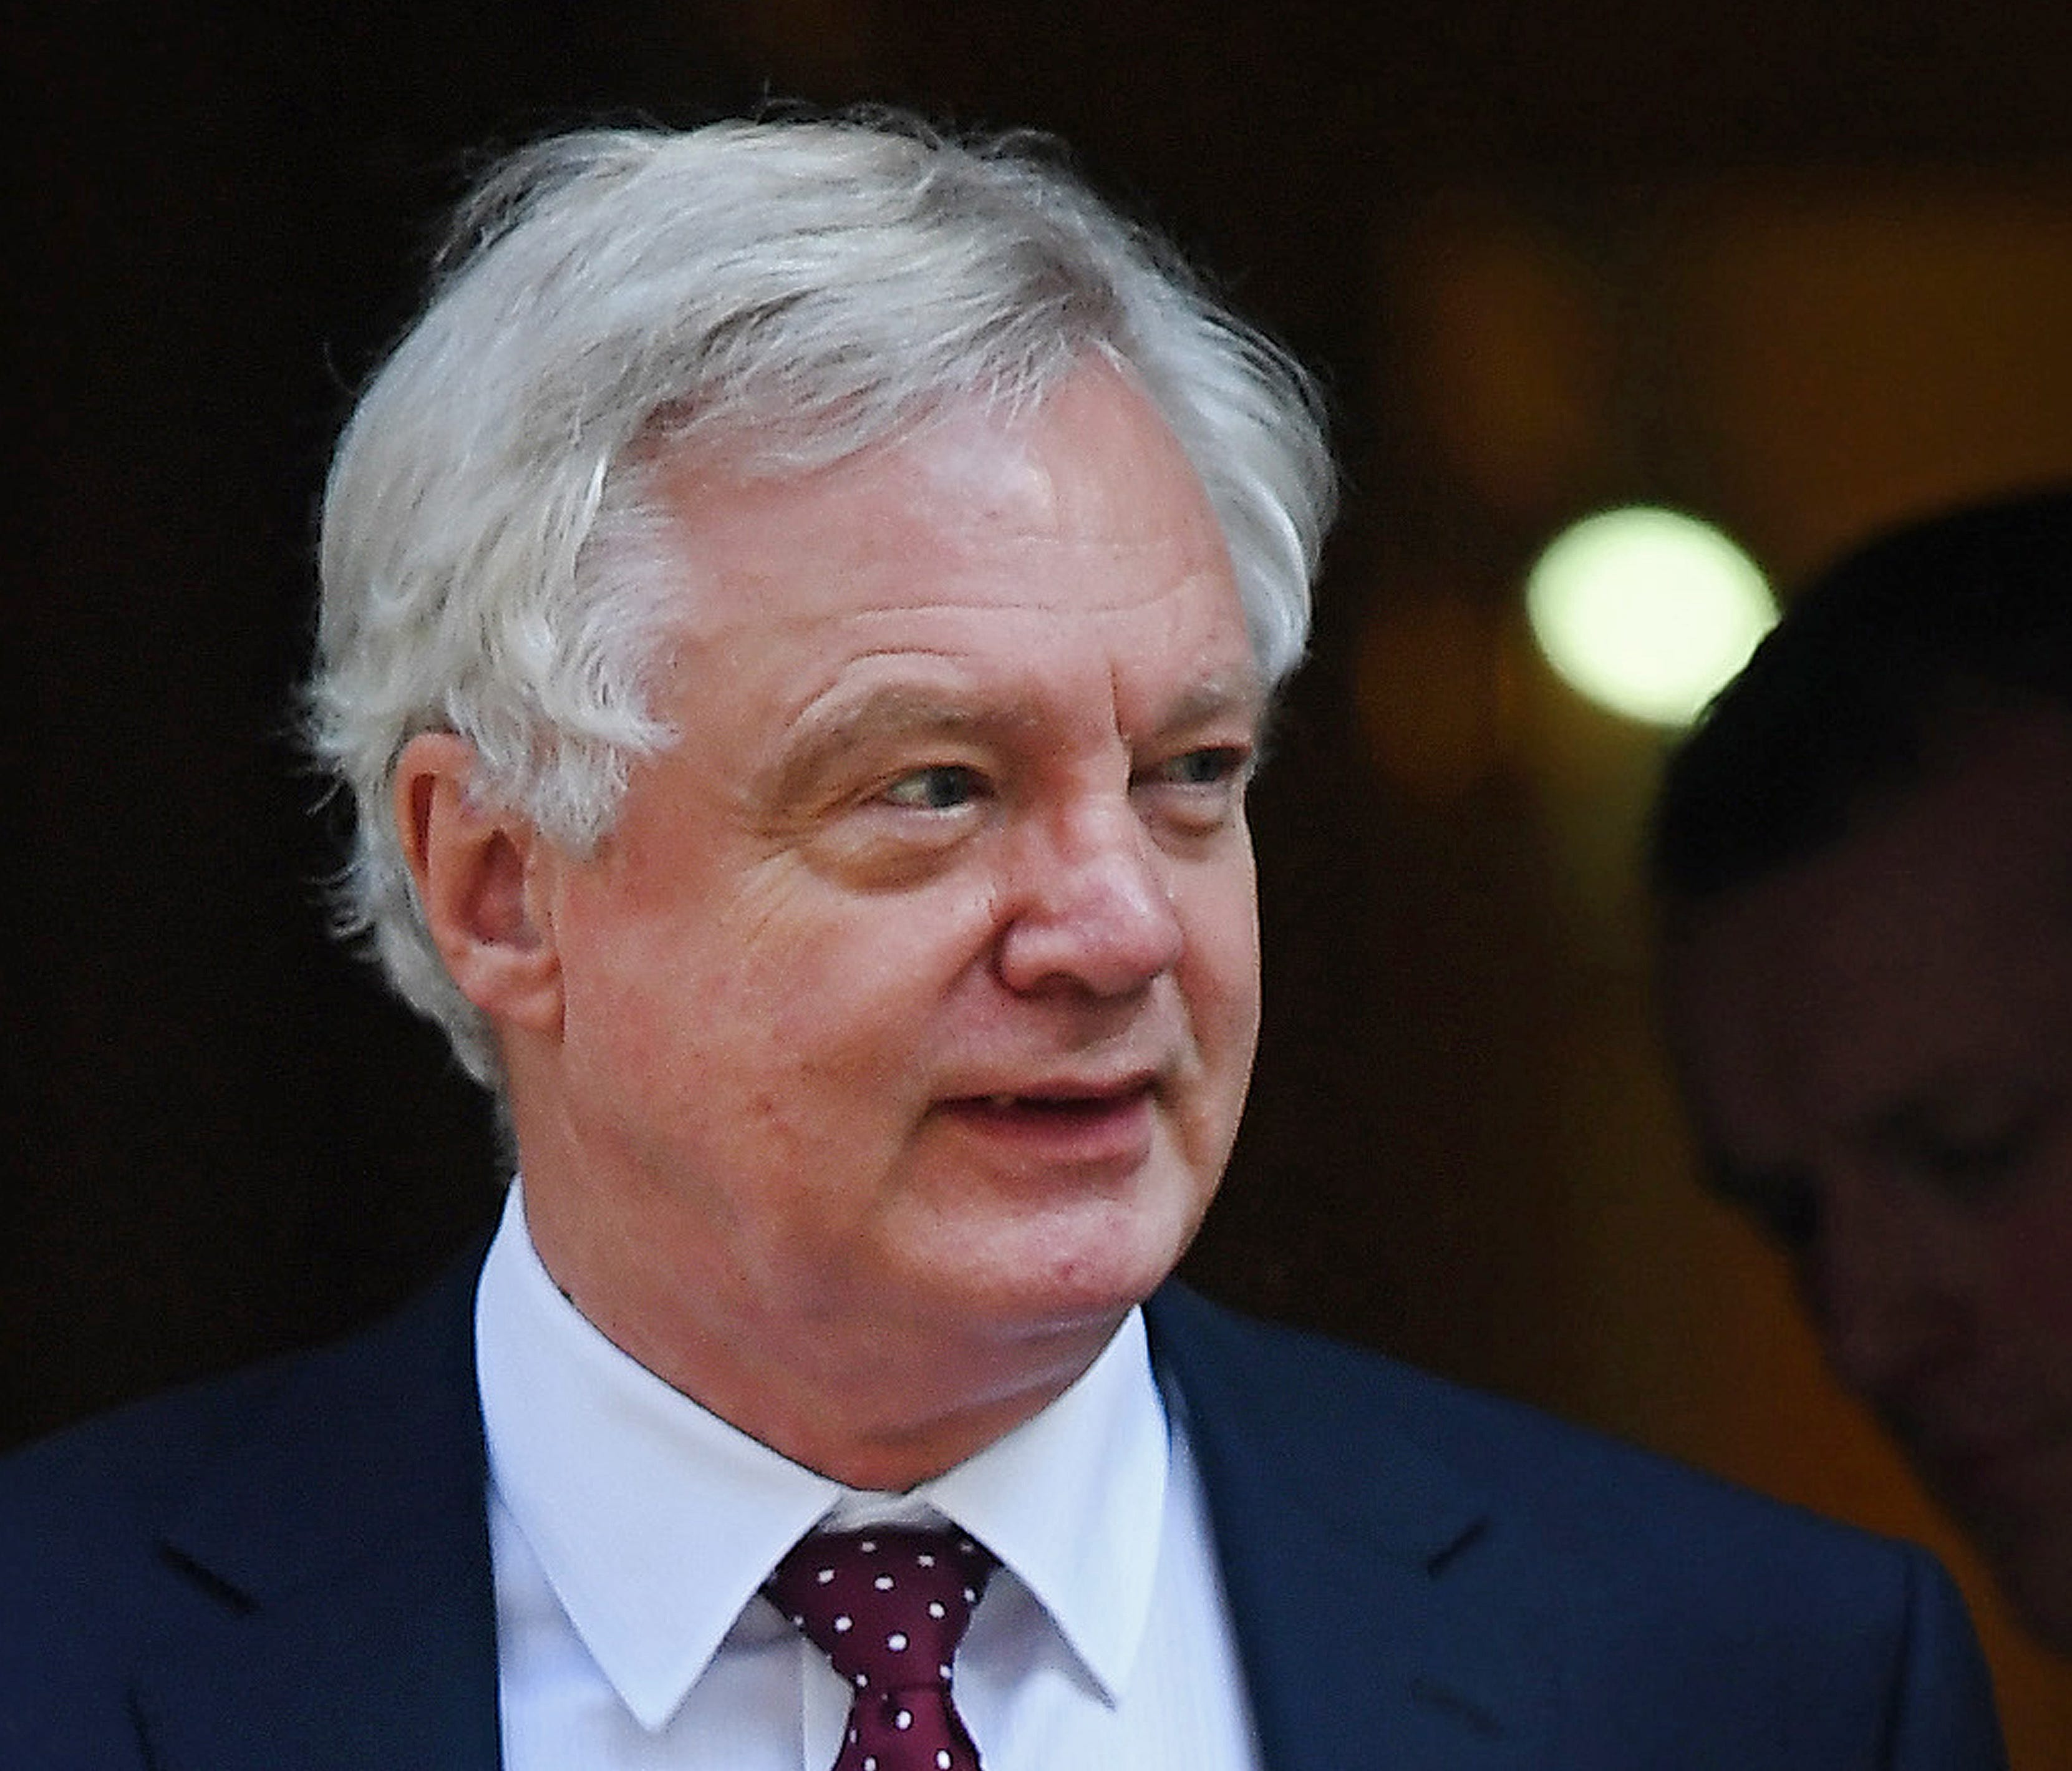 British Secretary of State for Exiting the European Union David Davis departs Downing Street following a cabinet meeting in London, Britain, July 3, 2018.